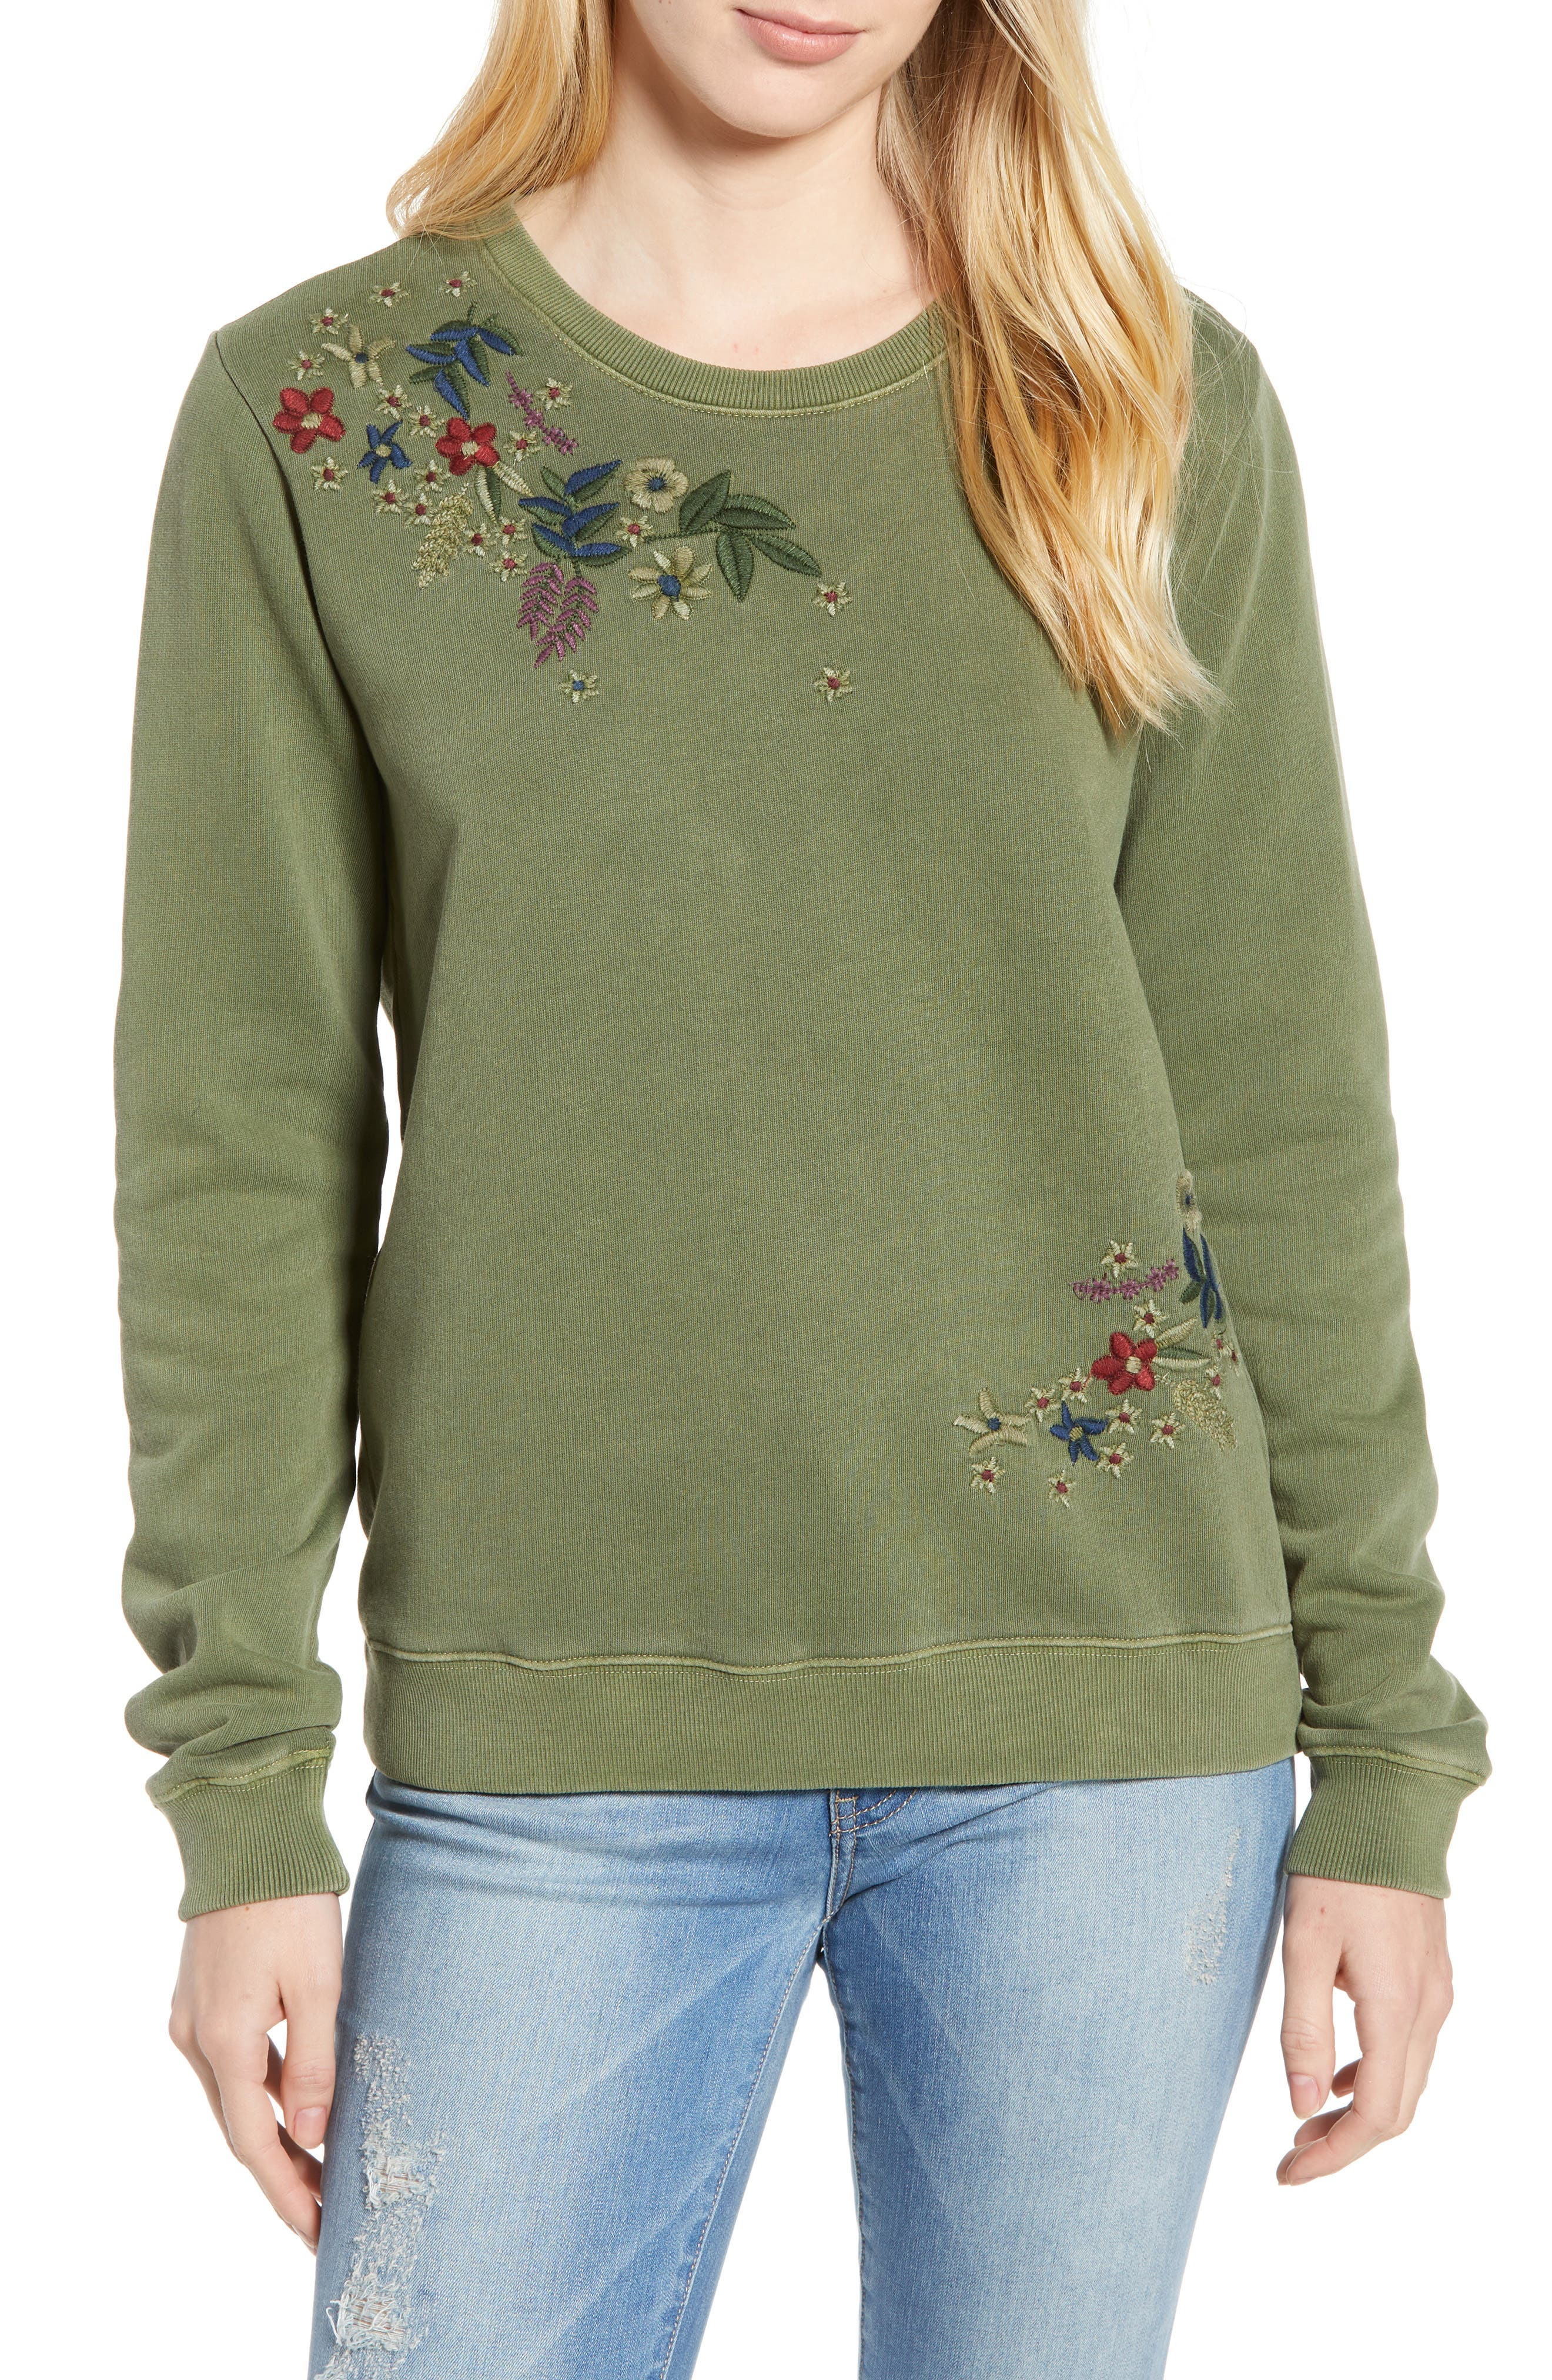 Embroidered Flowers Sweatshirt,                         Main,                         color, OLIVE KNIT